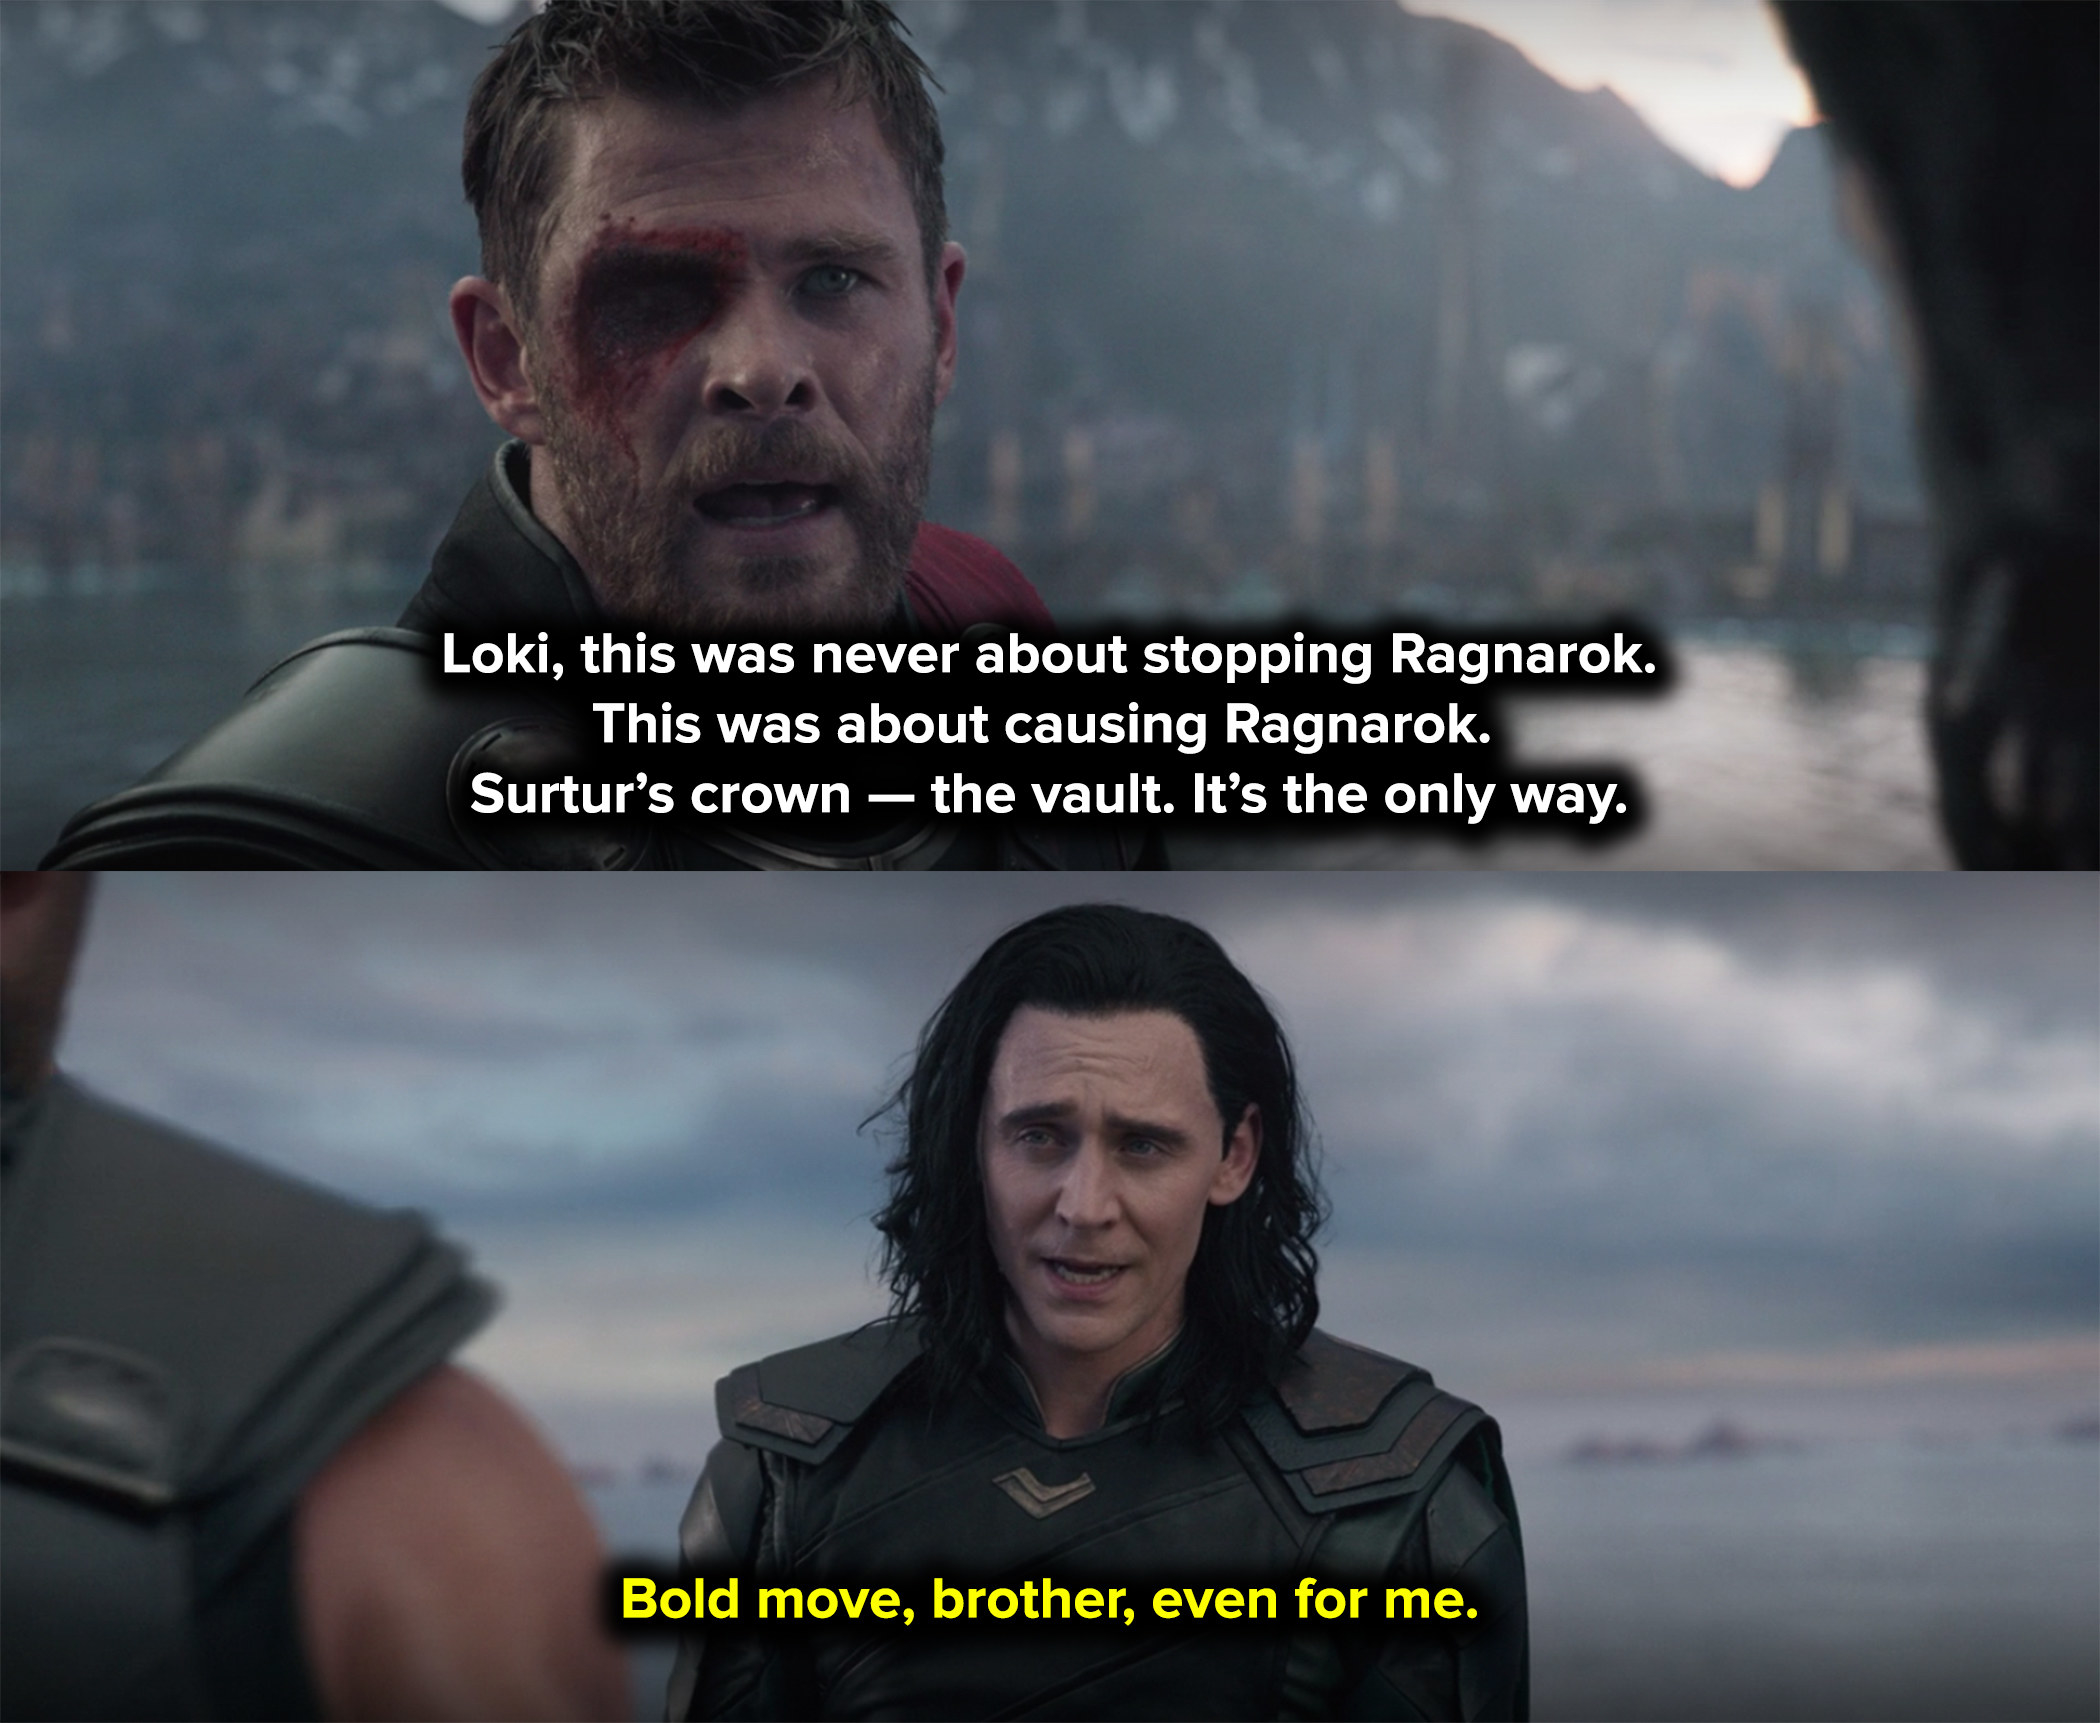 Thor told him they had to bring about Ragnarok